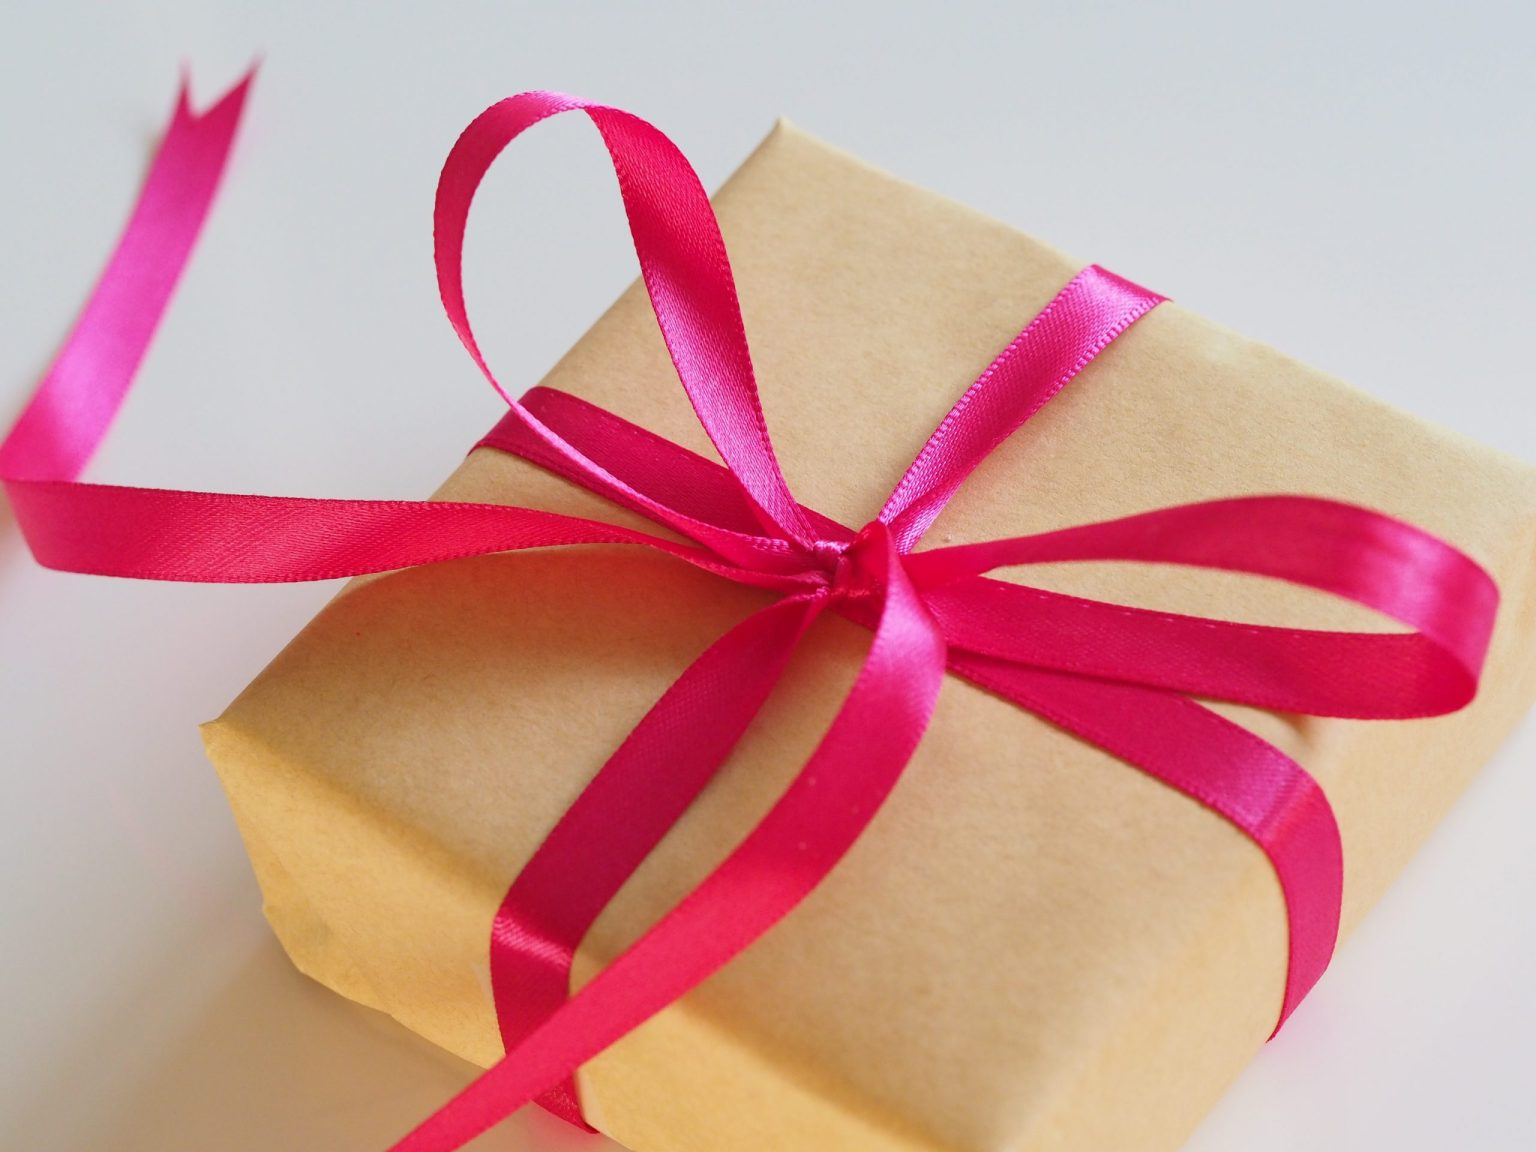 parcel tied up with bow